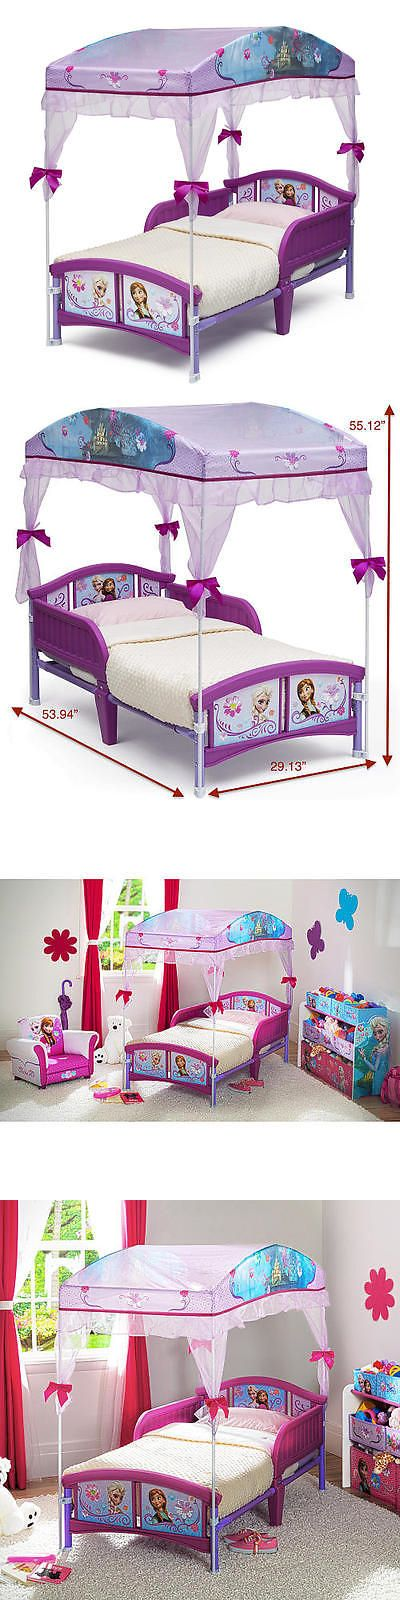 Kids Furniture: New Disney Frozen Canopy Toddler Bed Model:18951329 BUY IT NOW ONLY: $59.99